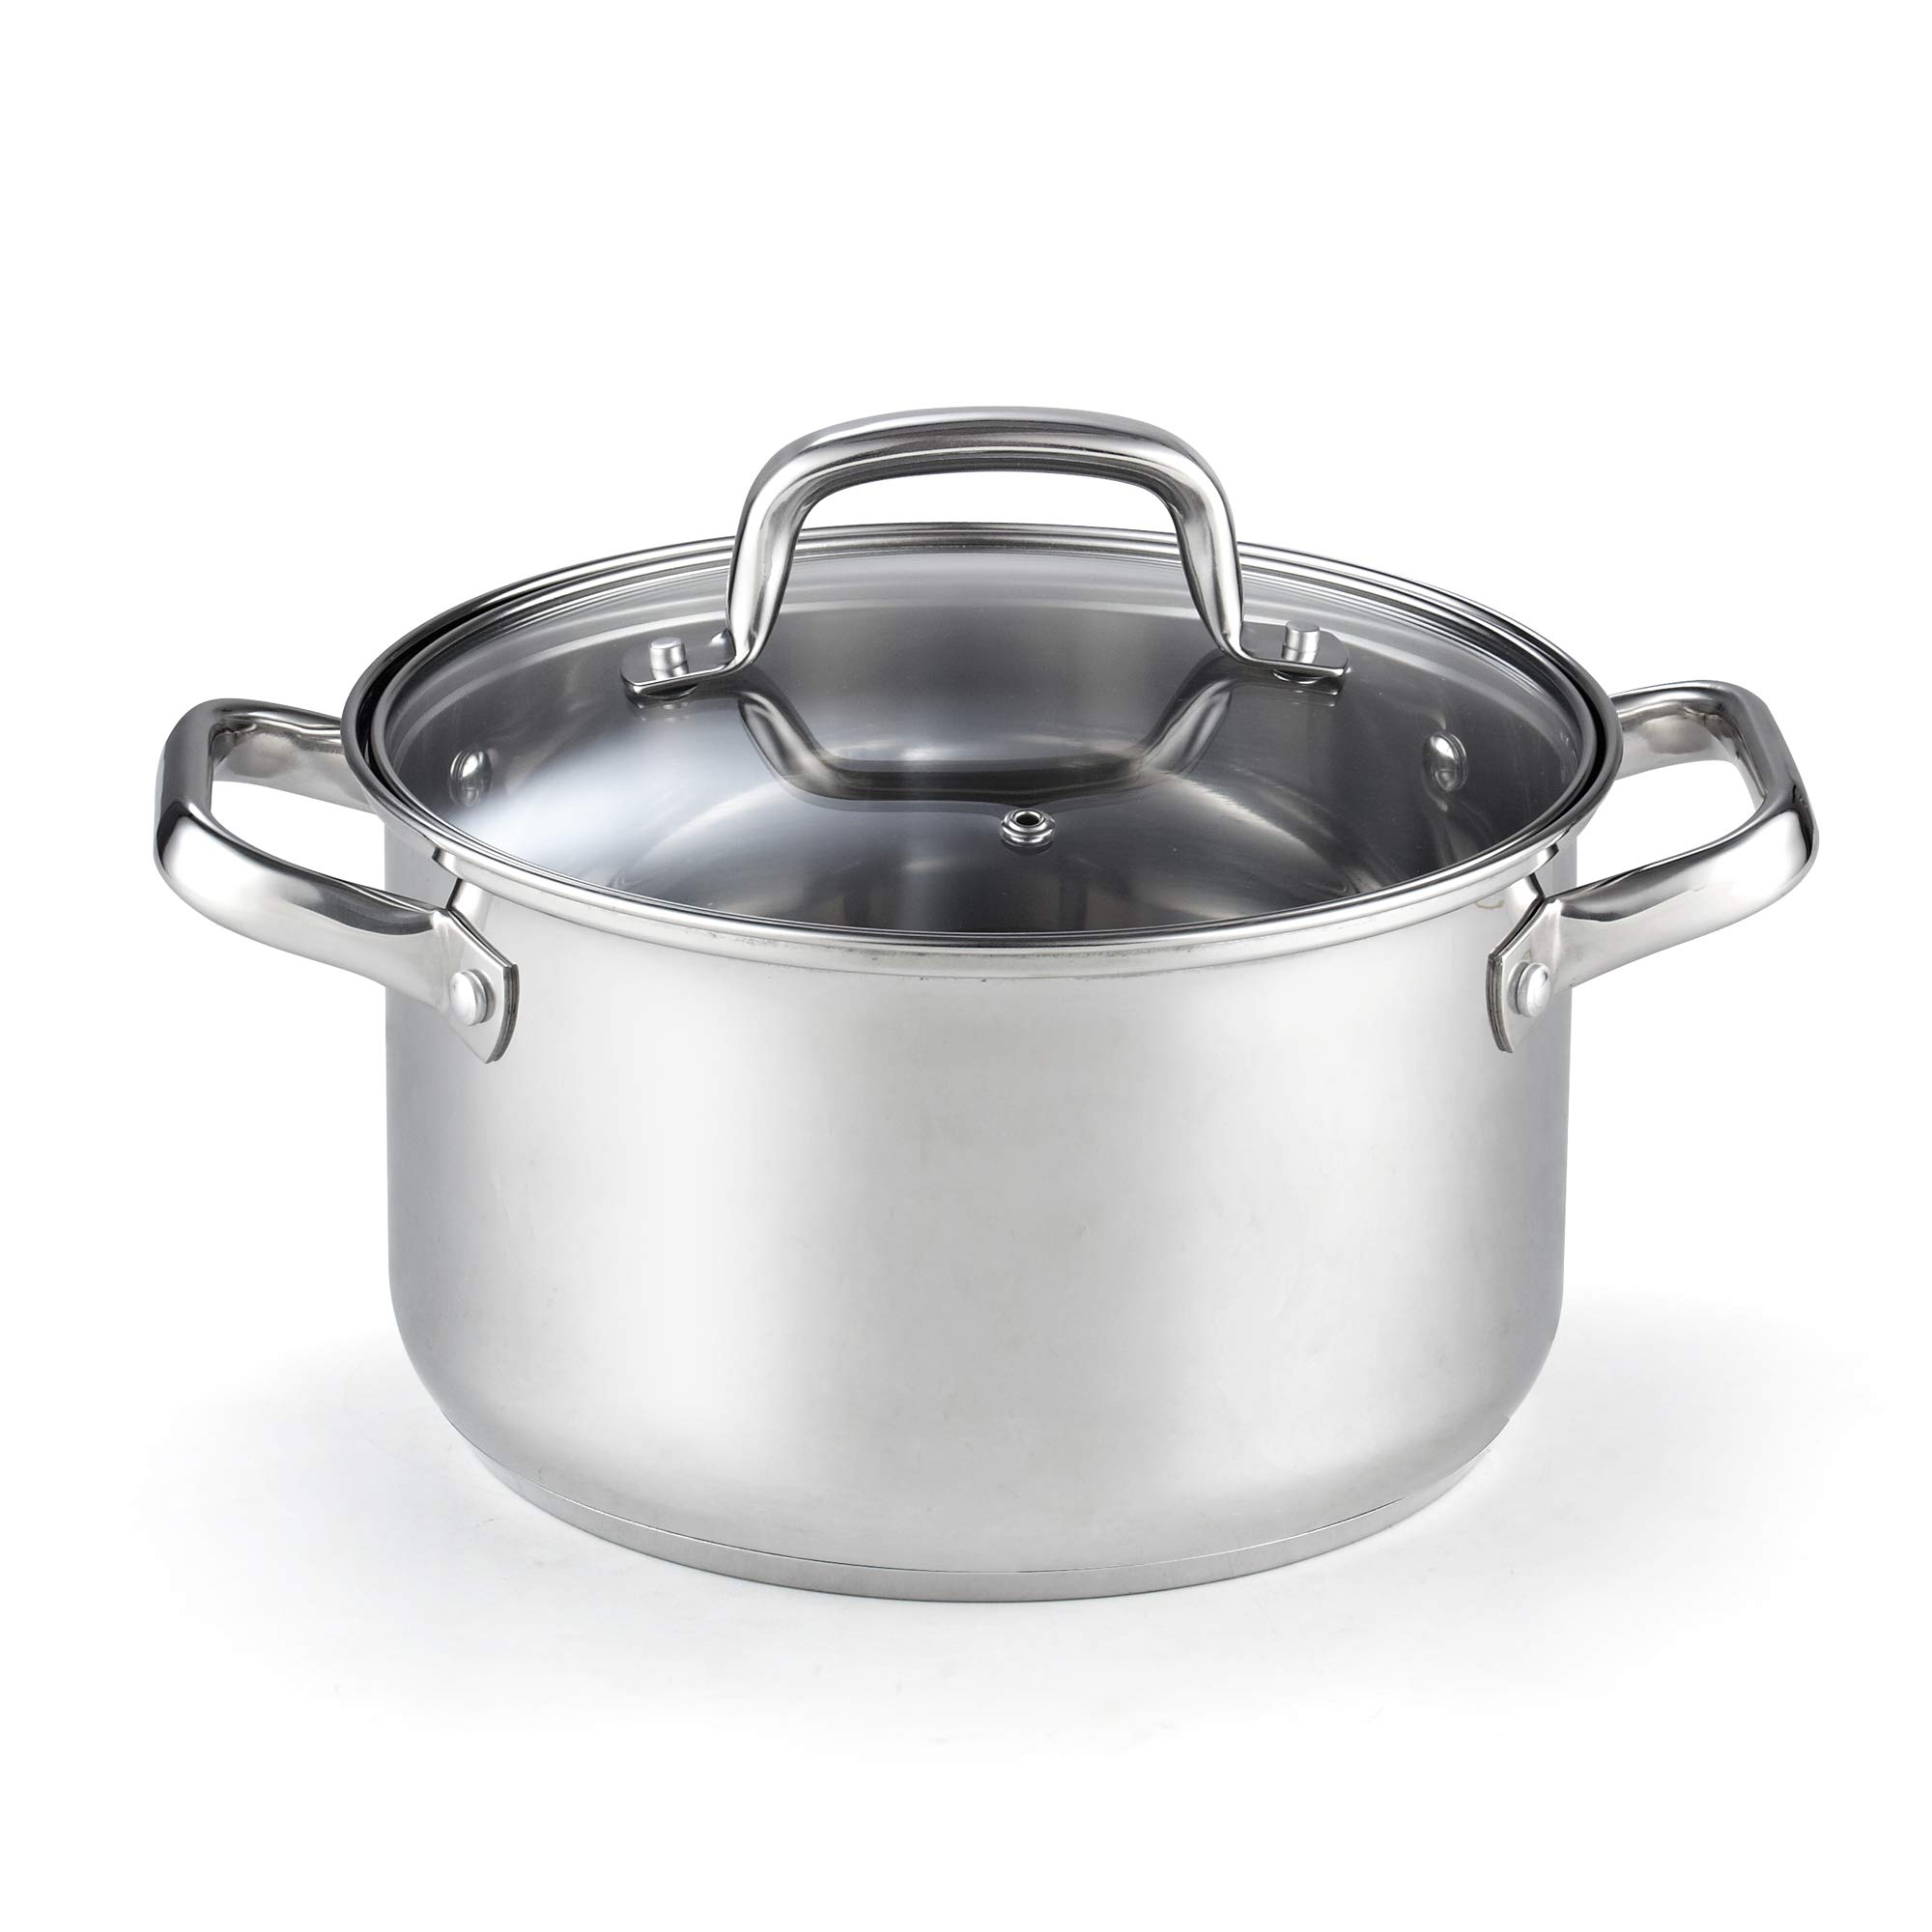 Cook N Home 02609 Lid 5-Quart Stainless Steel Casserole Stockpot Silver by Cook N Home